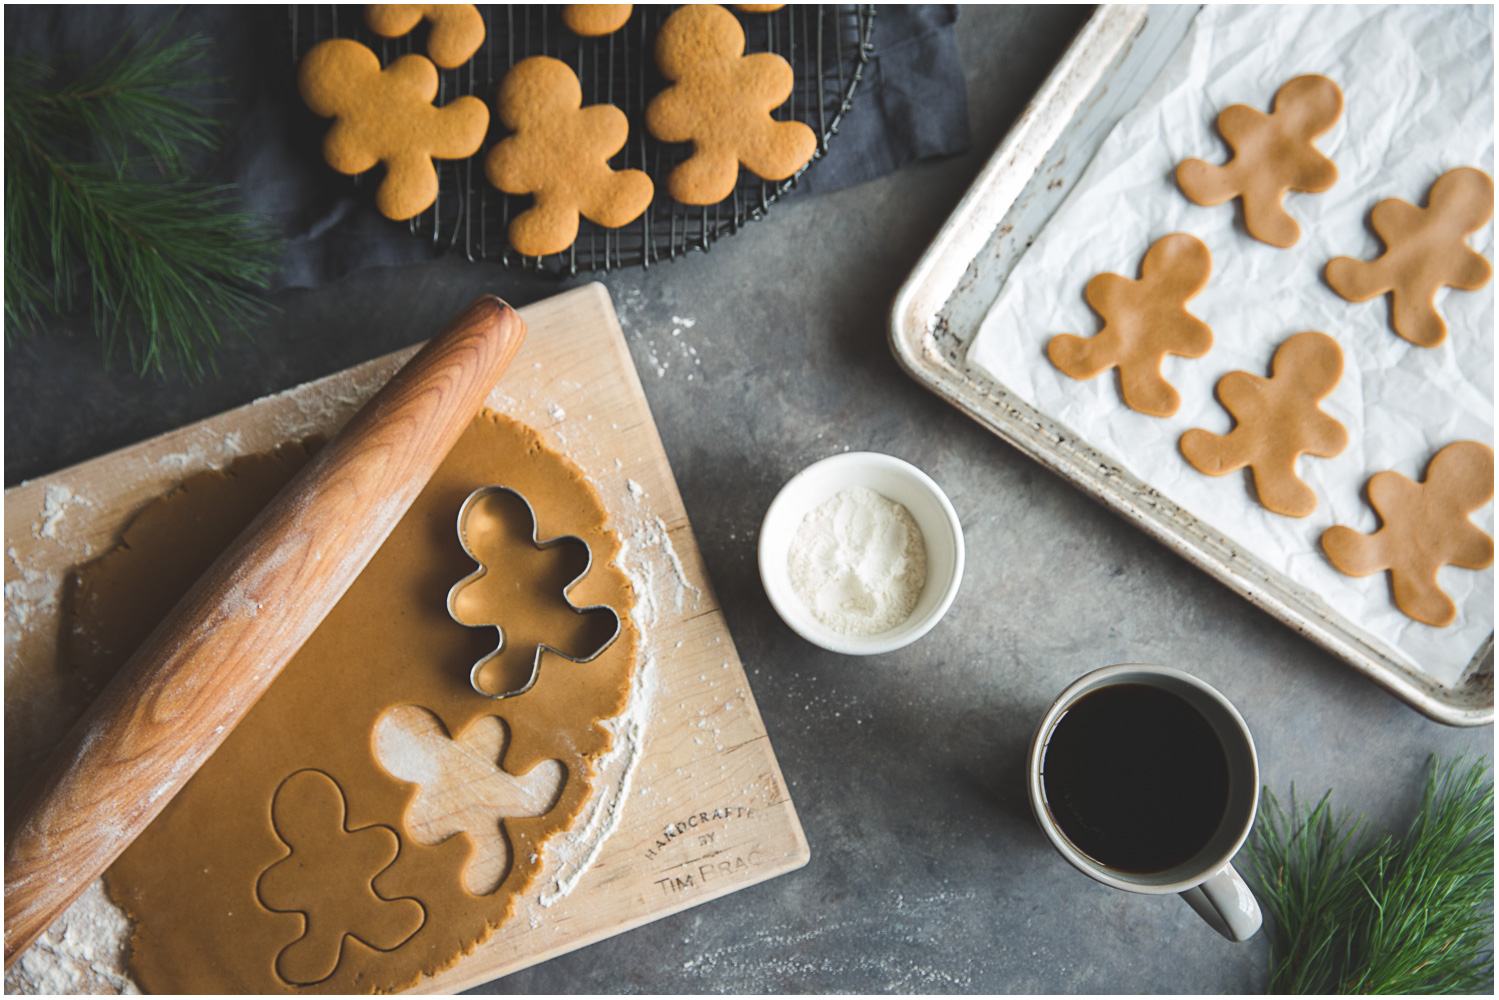 Soft molasses gingerbread men in the making